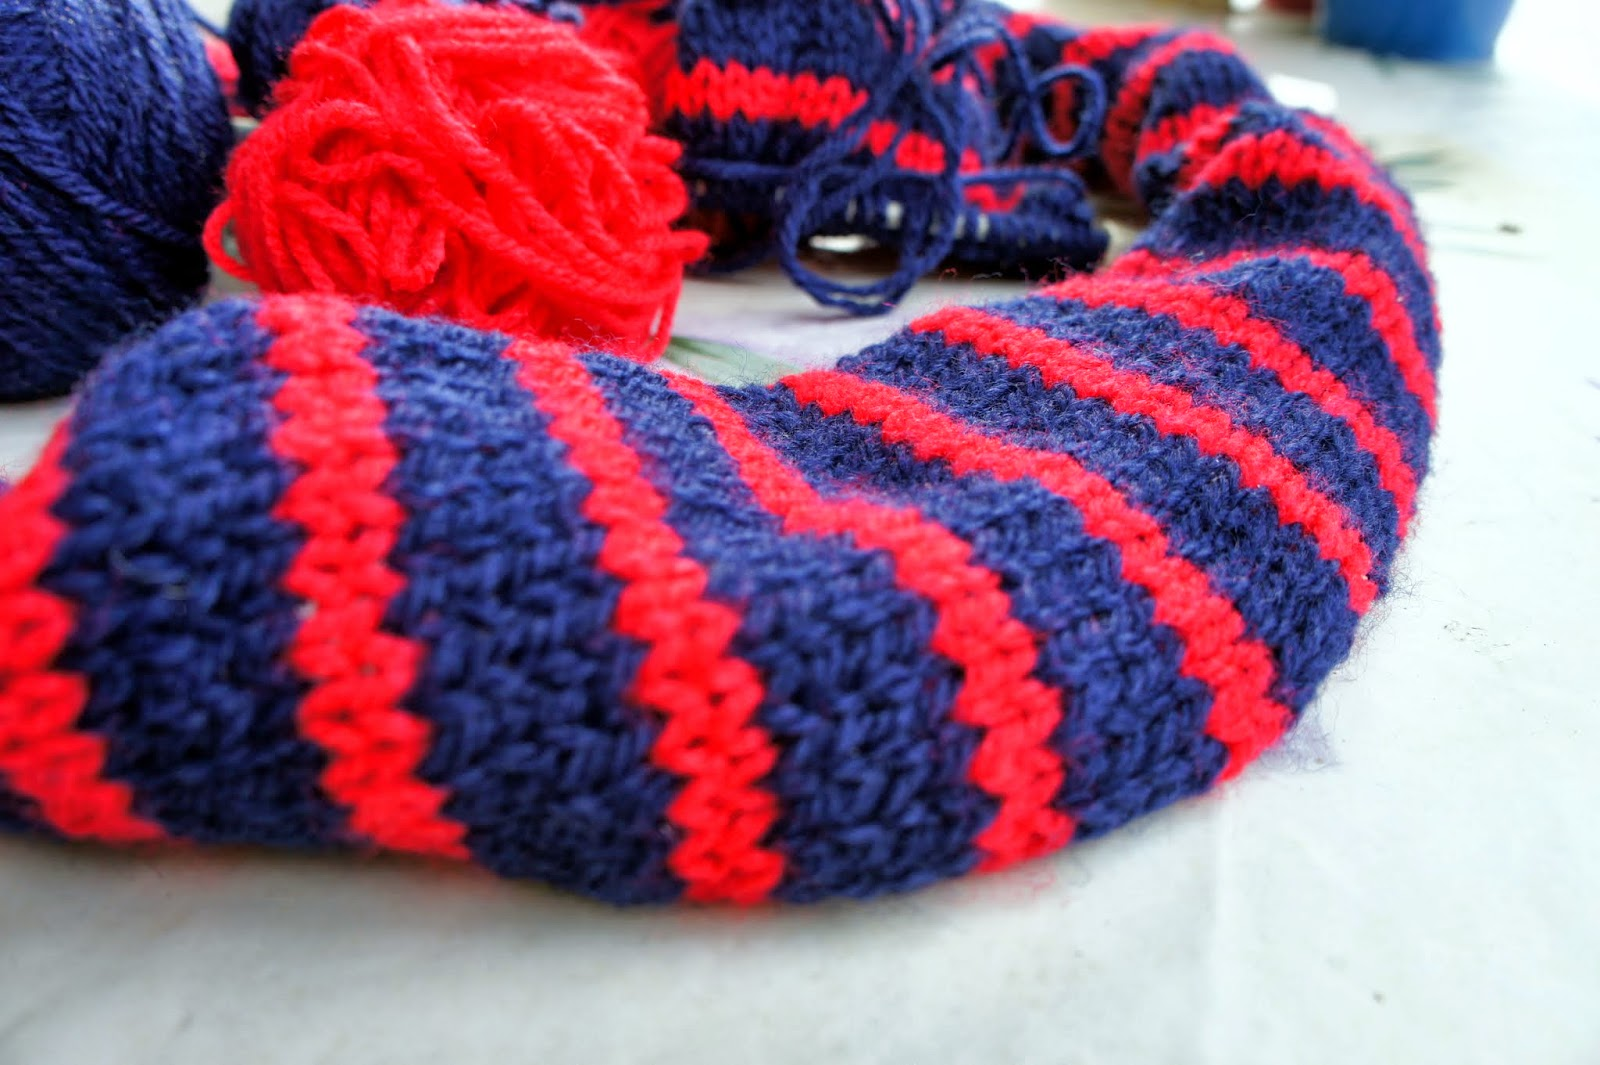 I Have Cast On 29 Sches And 3 Knit Each Side But Its Still Rolling In Think Too Wide So Plan To Sew It Together Making A